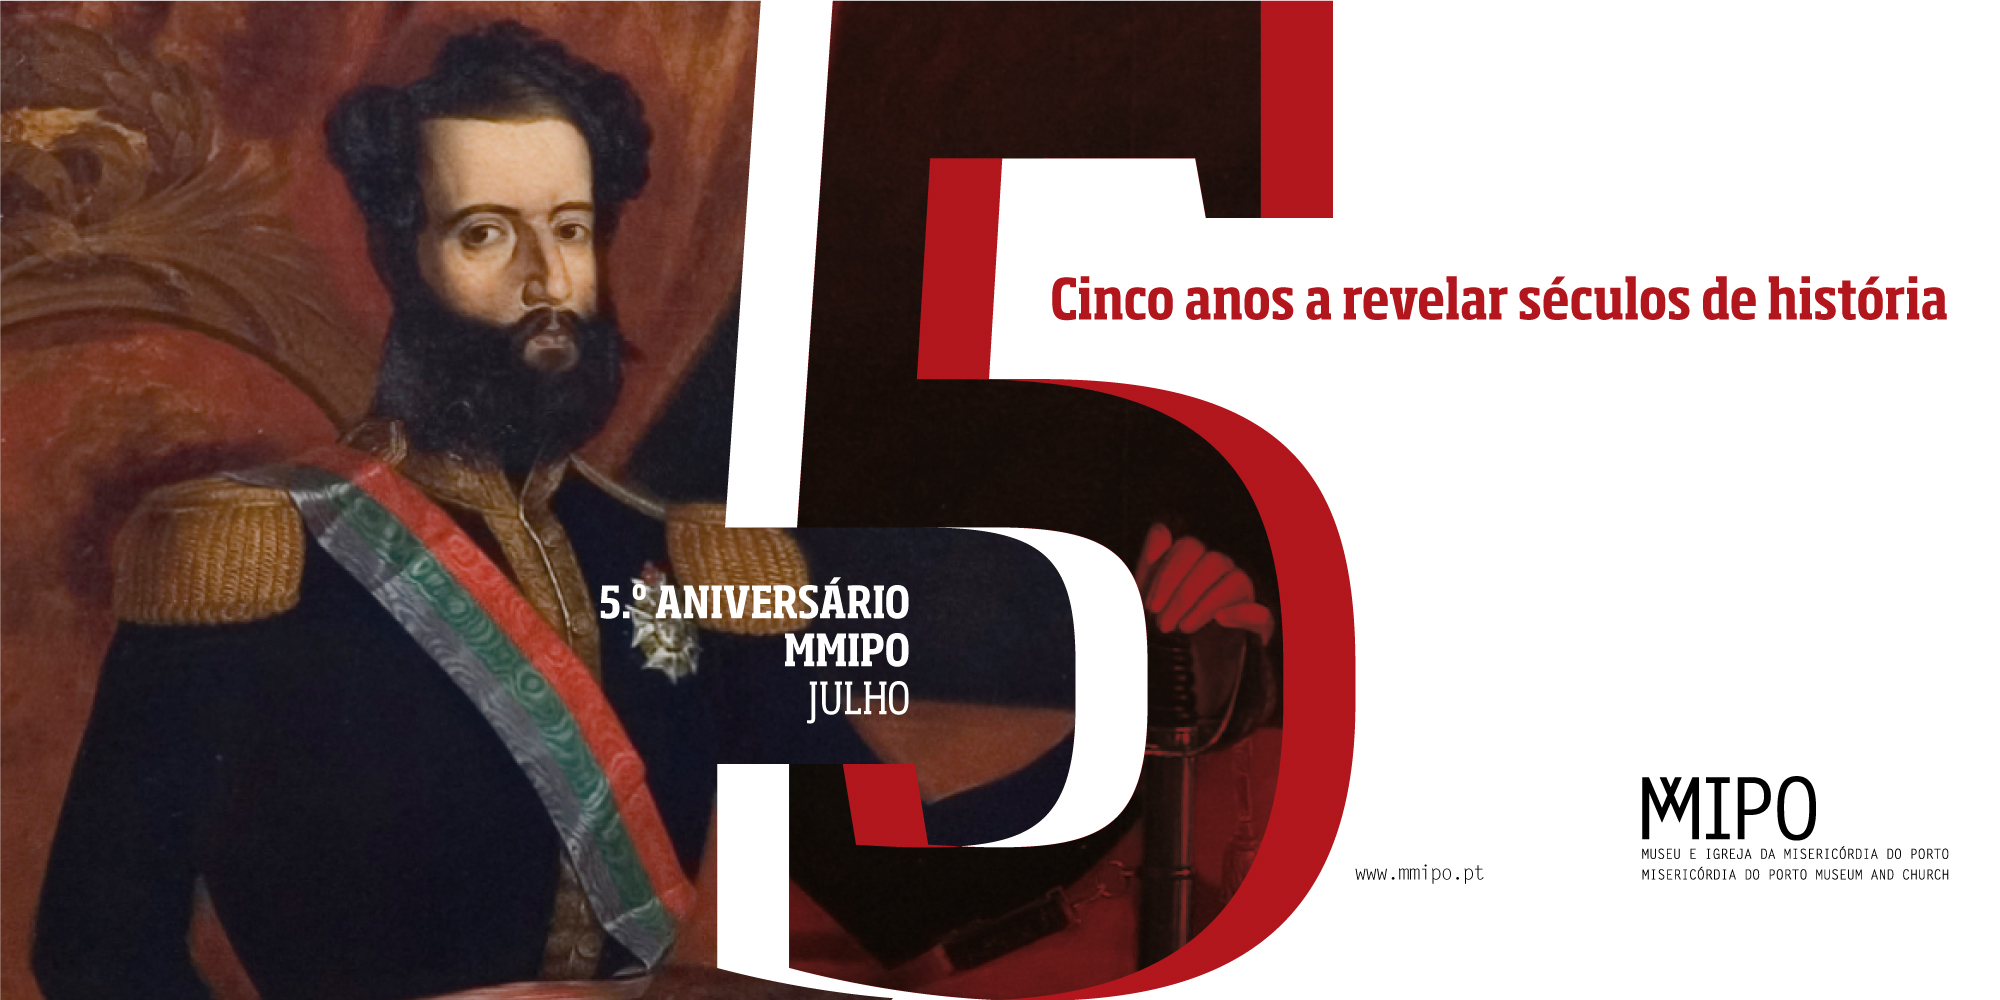 https://www.scmp.pt/assets/misc/img/noticias/2020/MMIPO%205%20anos/M-5aniversario-bannersite.jpg